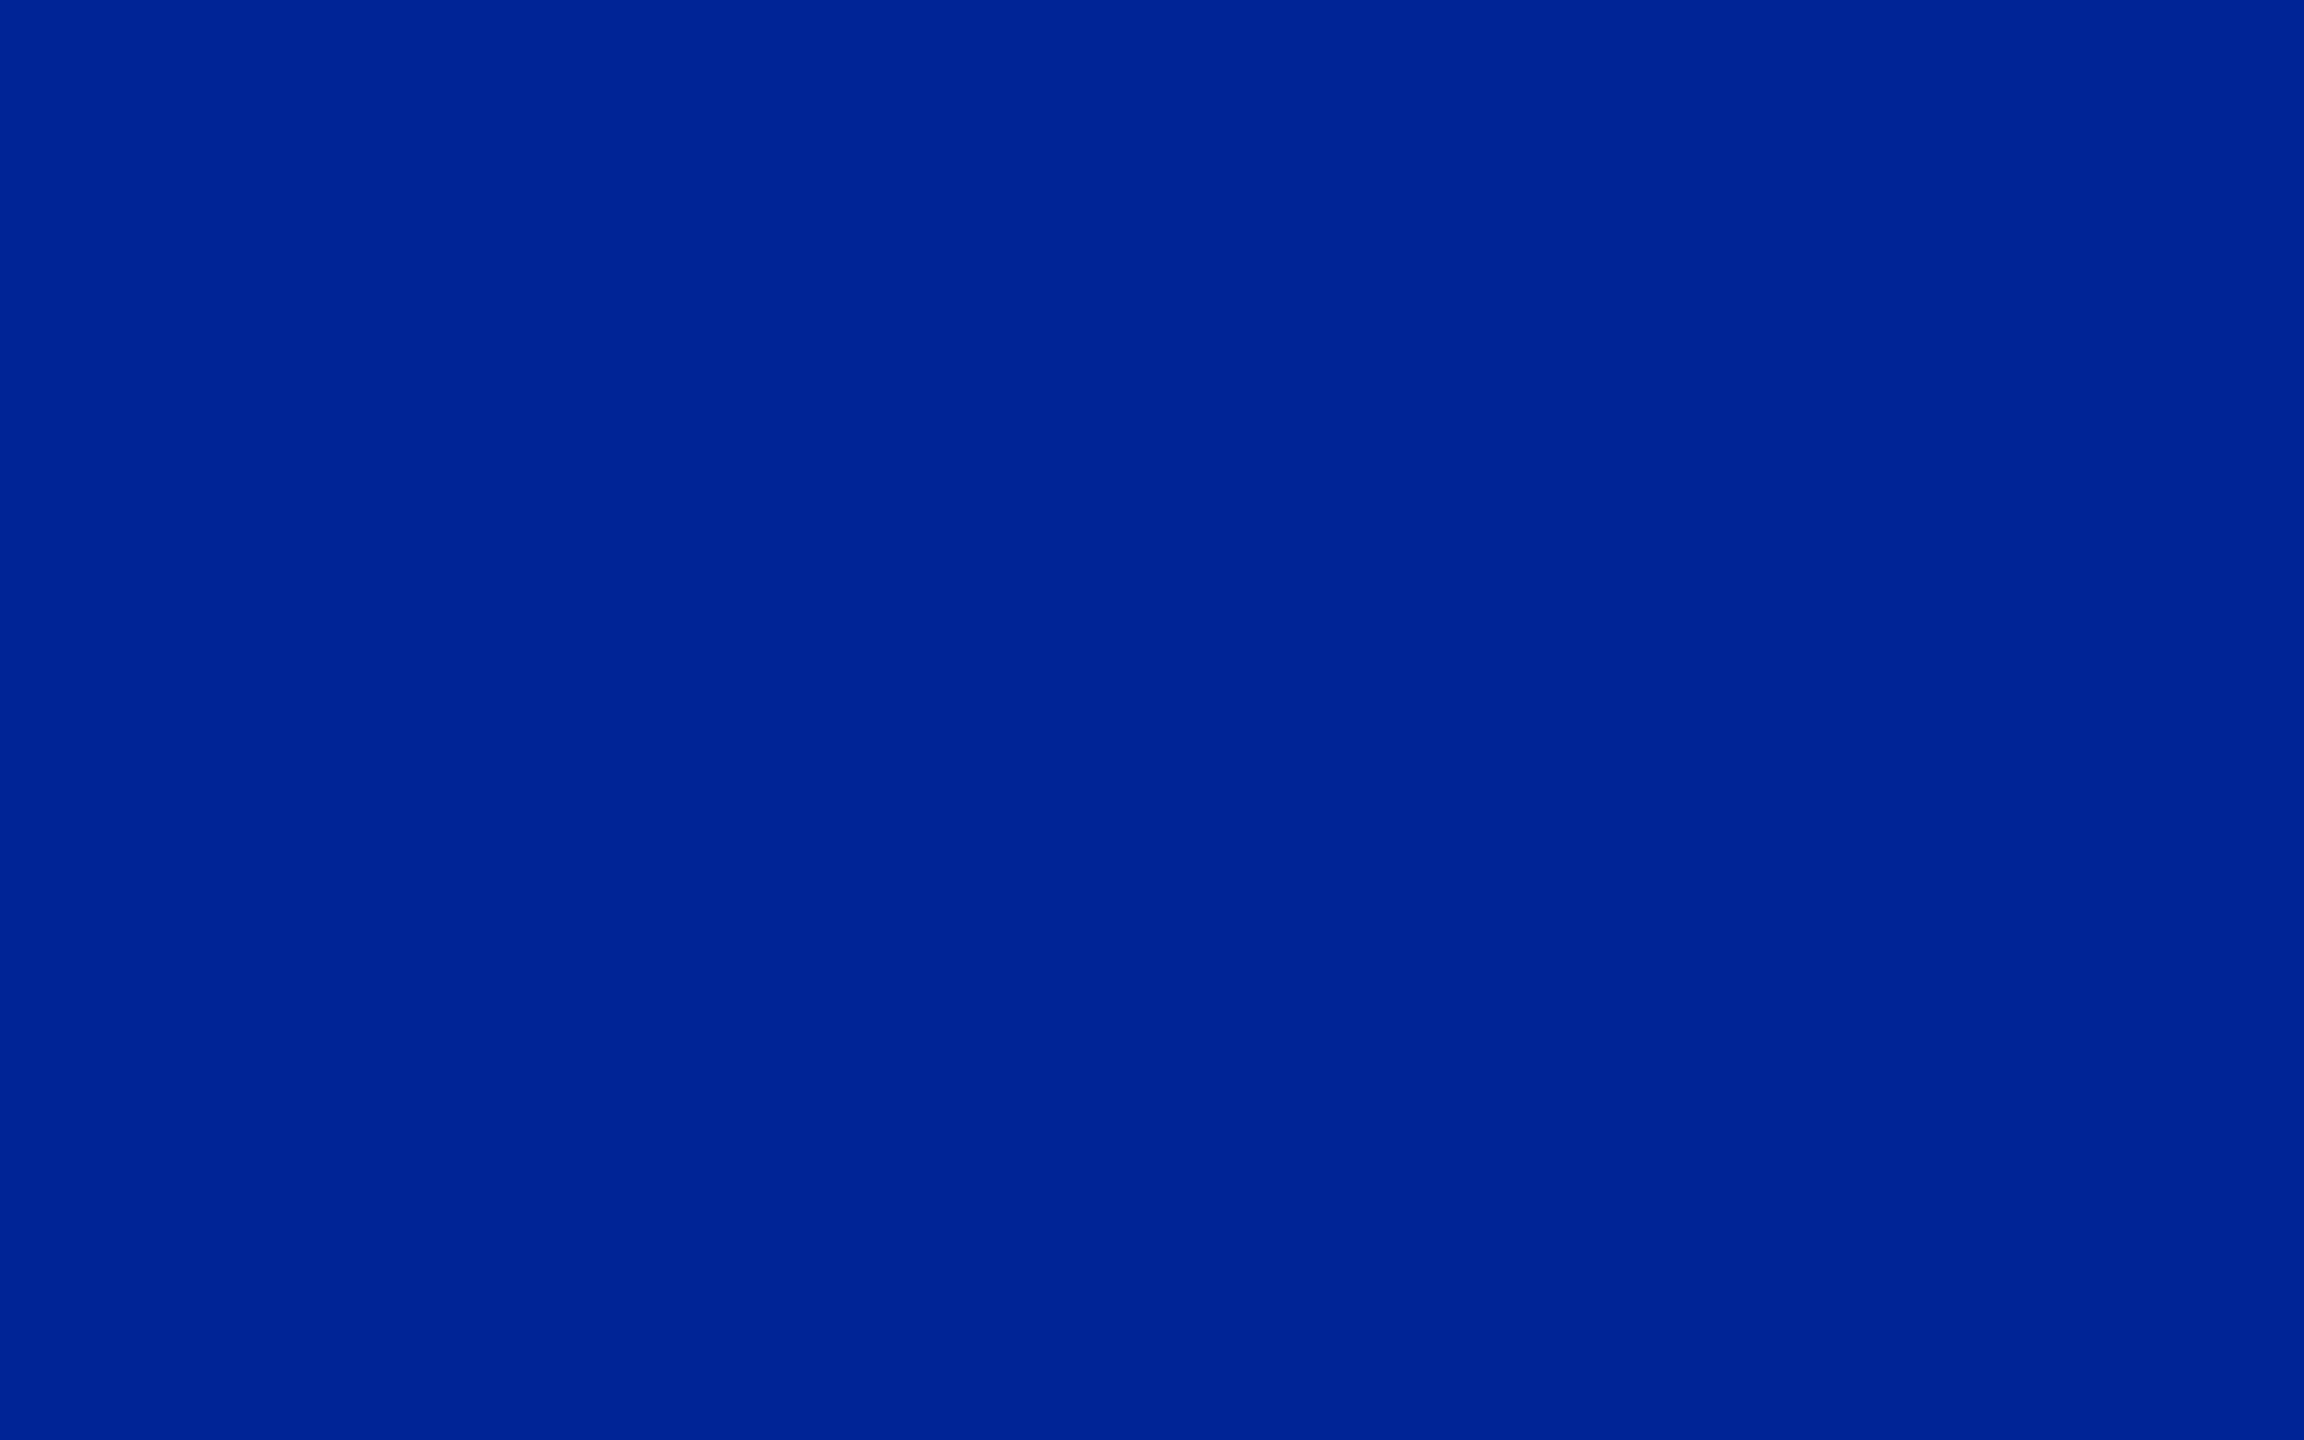 2304x1440 Imperial Blue Solid Color Background